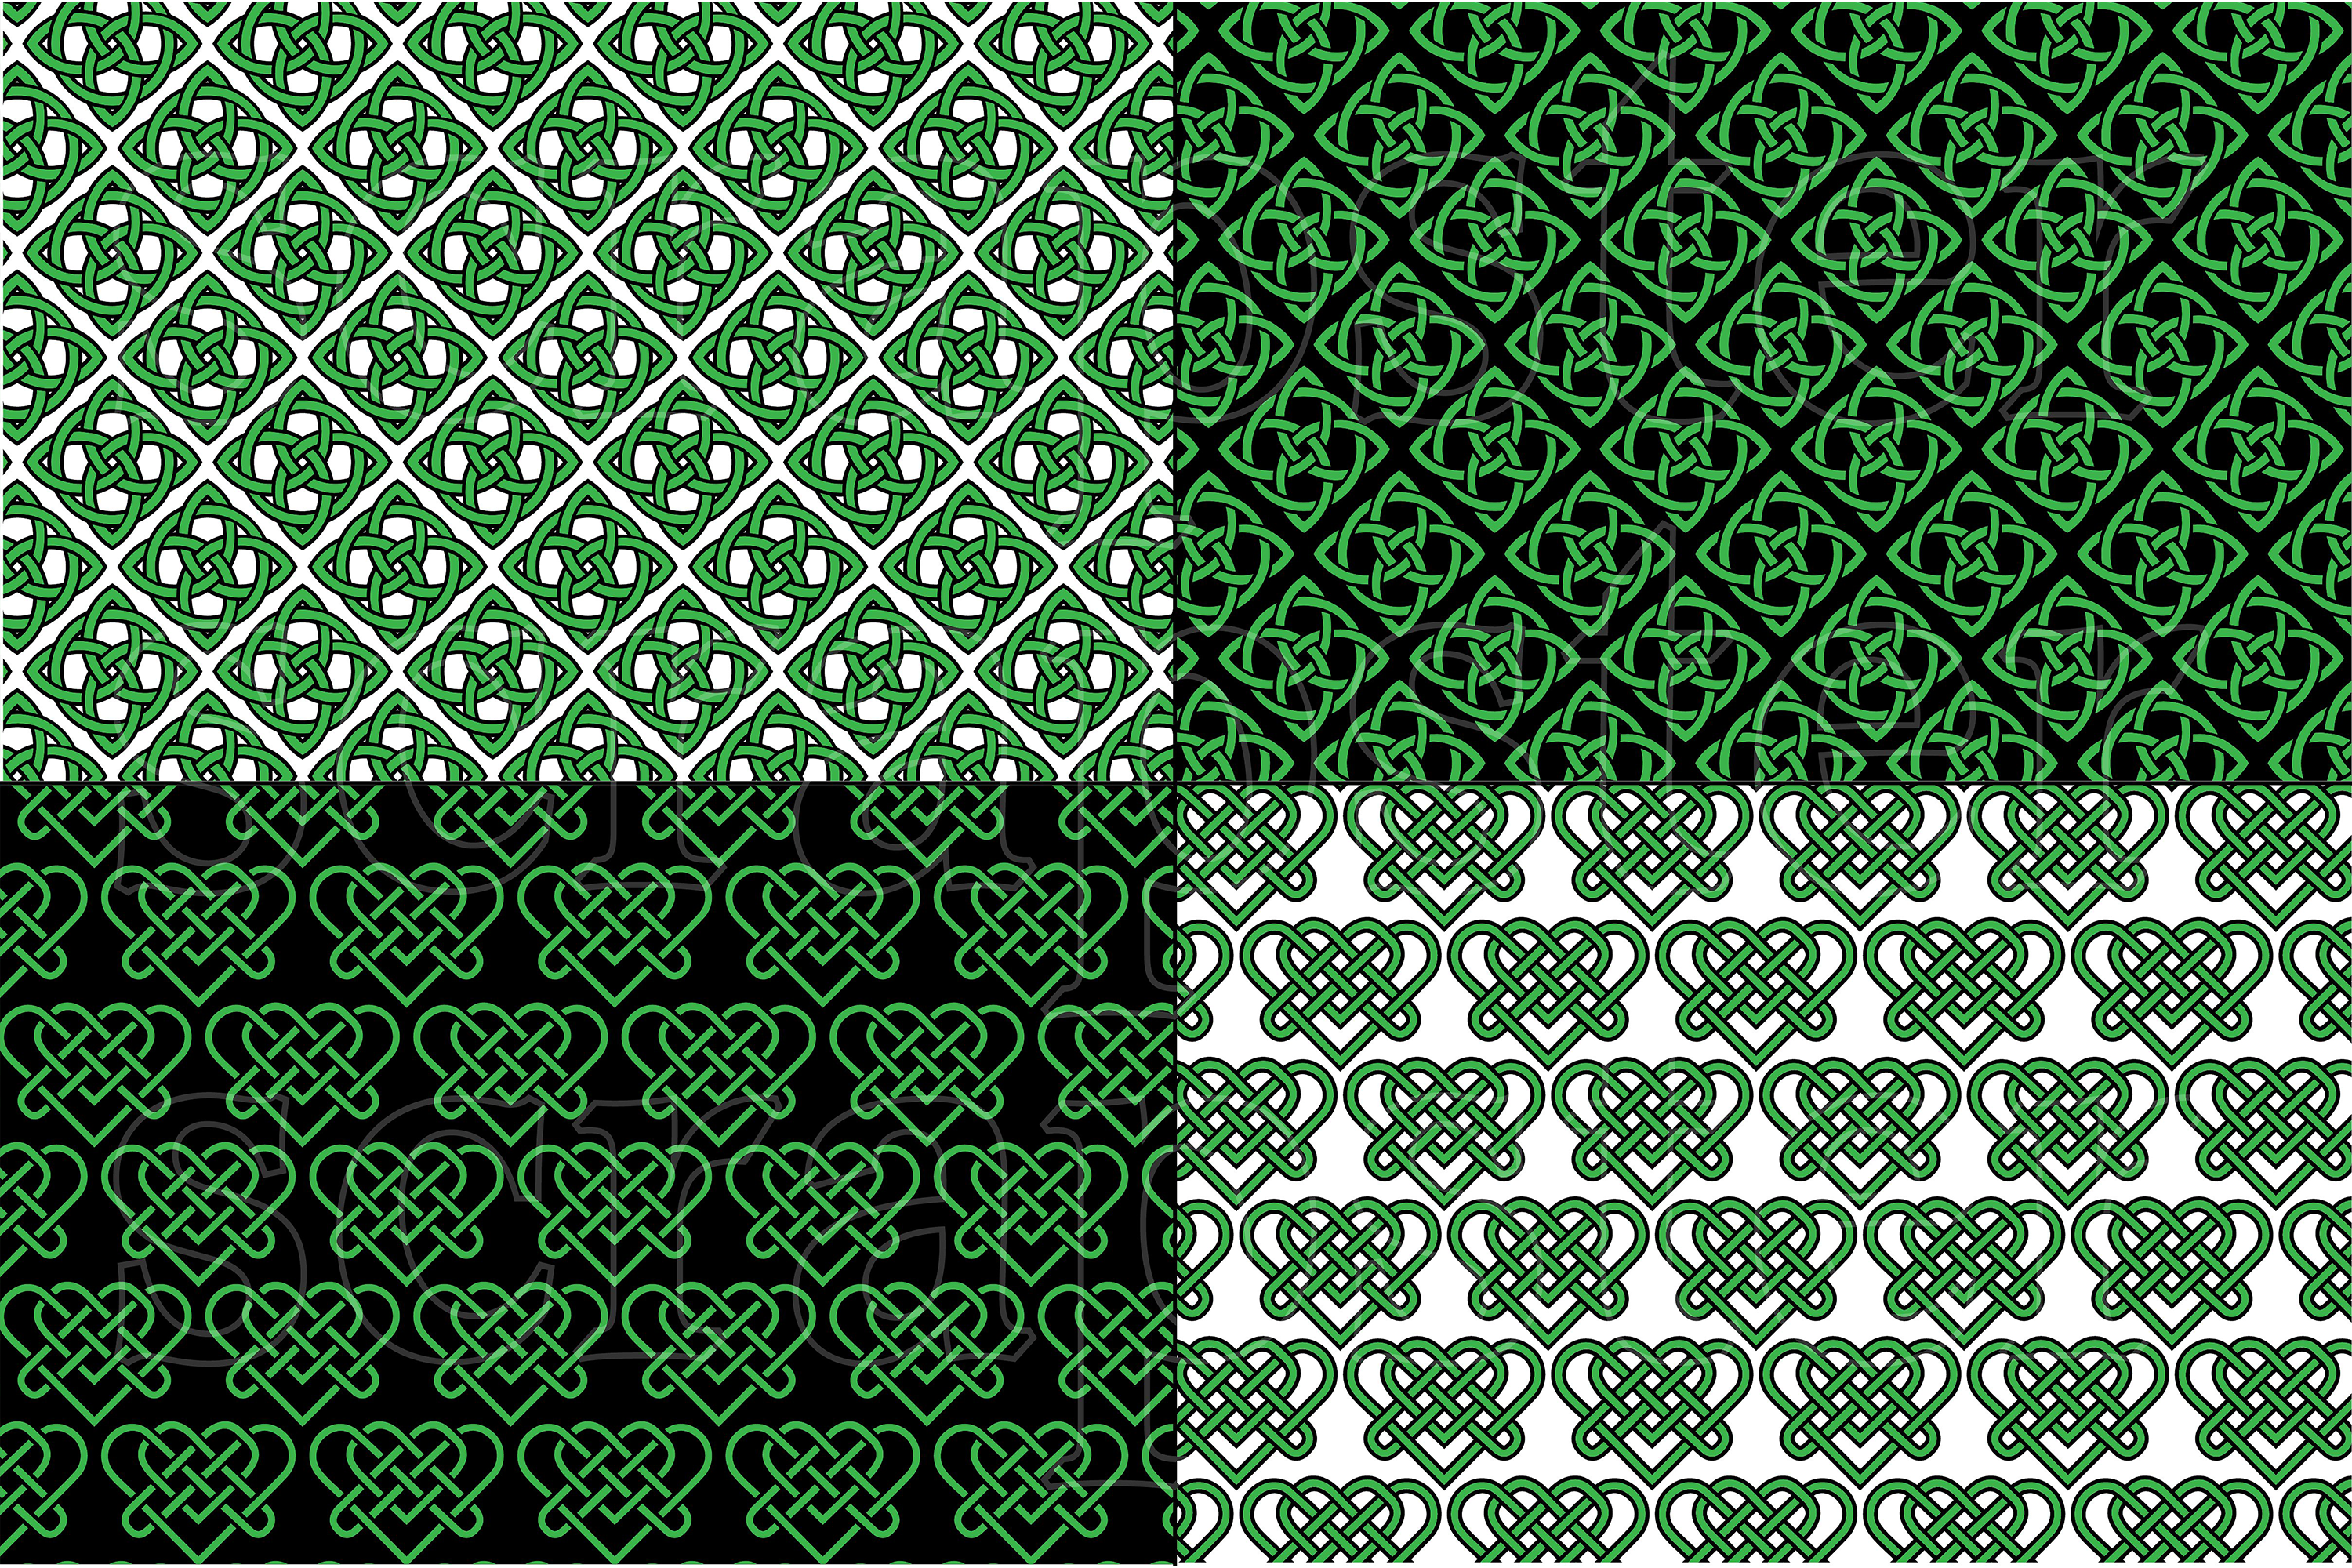 Celtic Knot Patterns example image 3